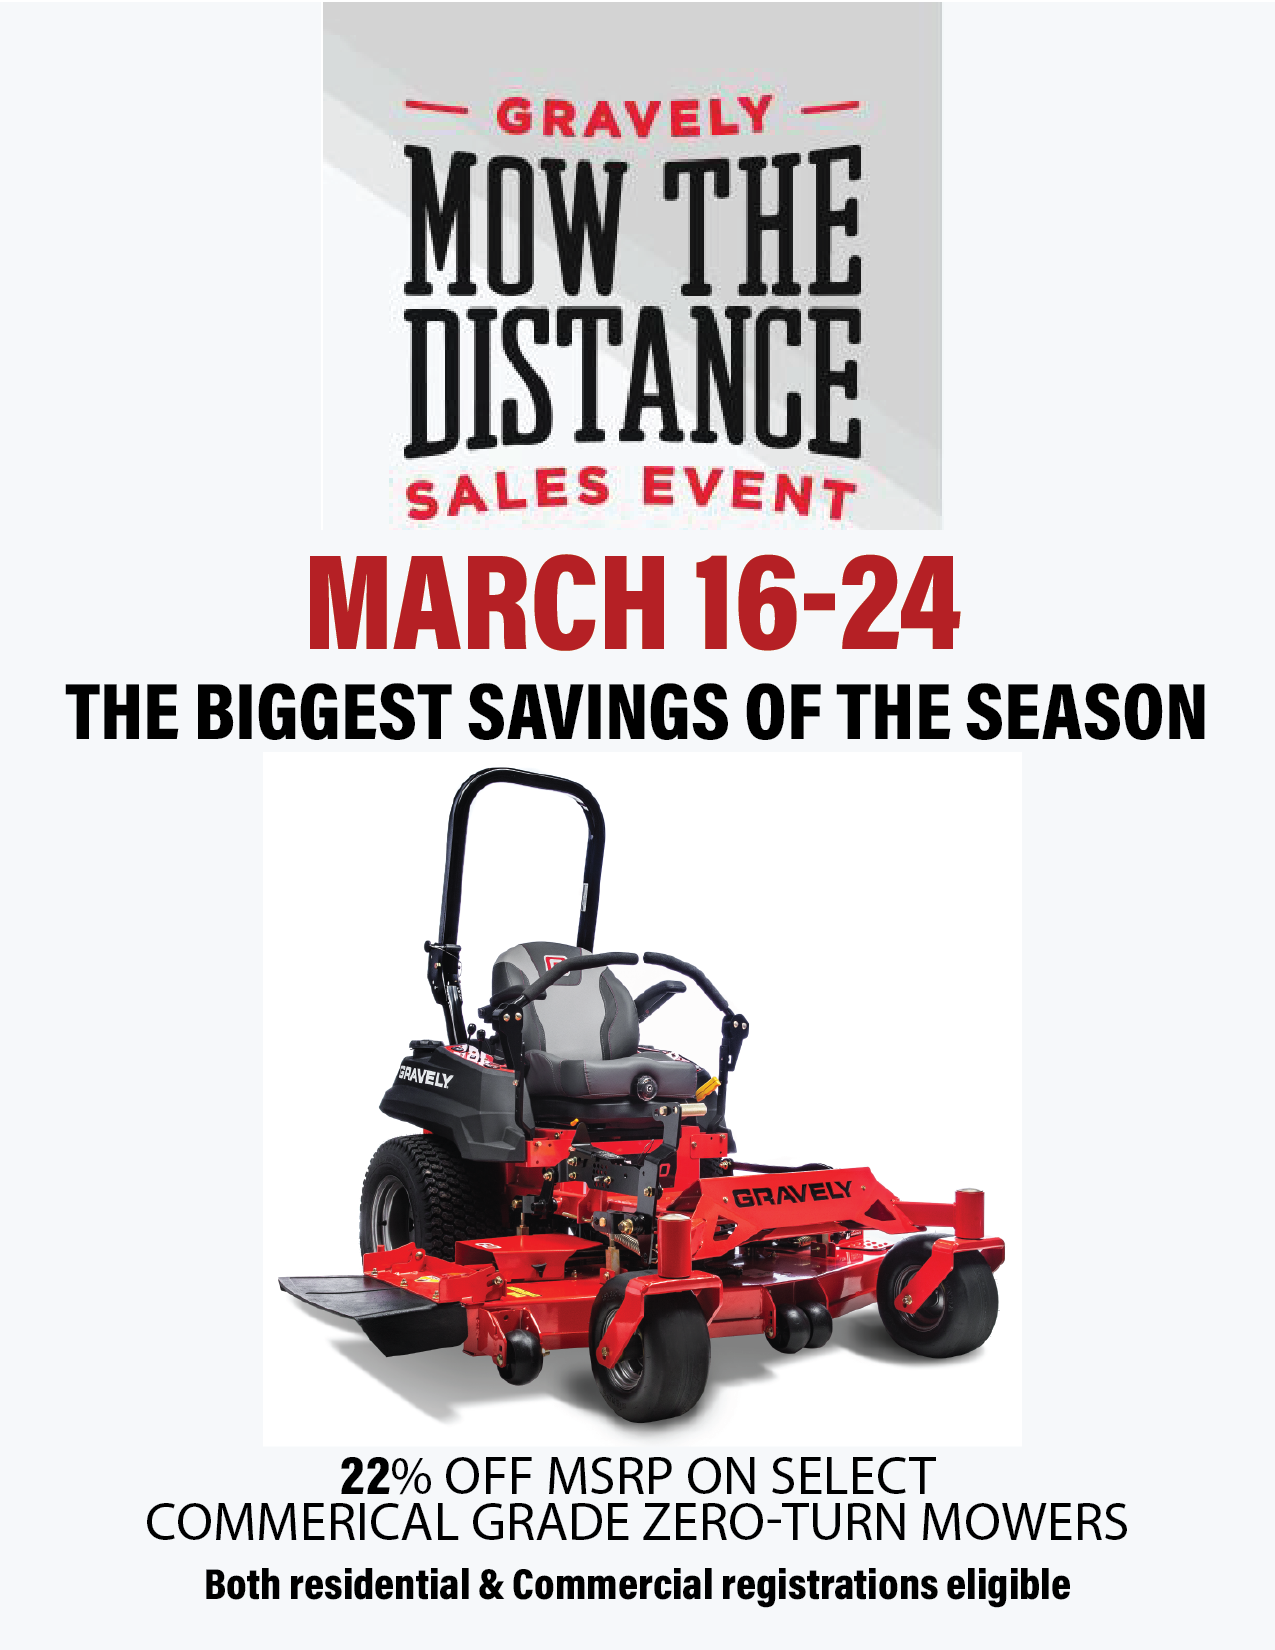 Gravely Mow The Distance Sales Event